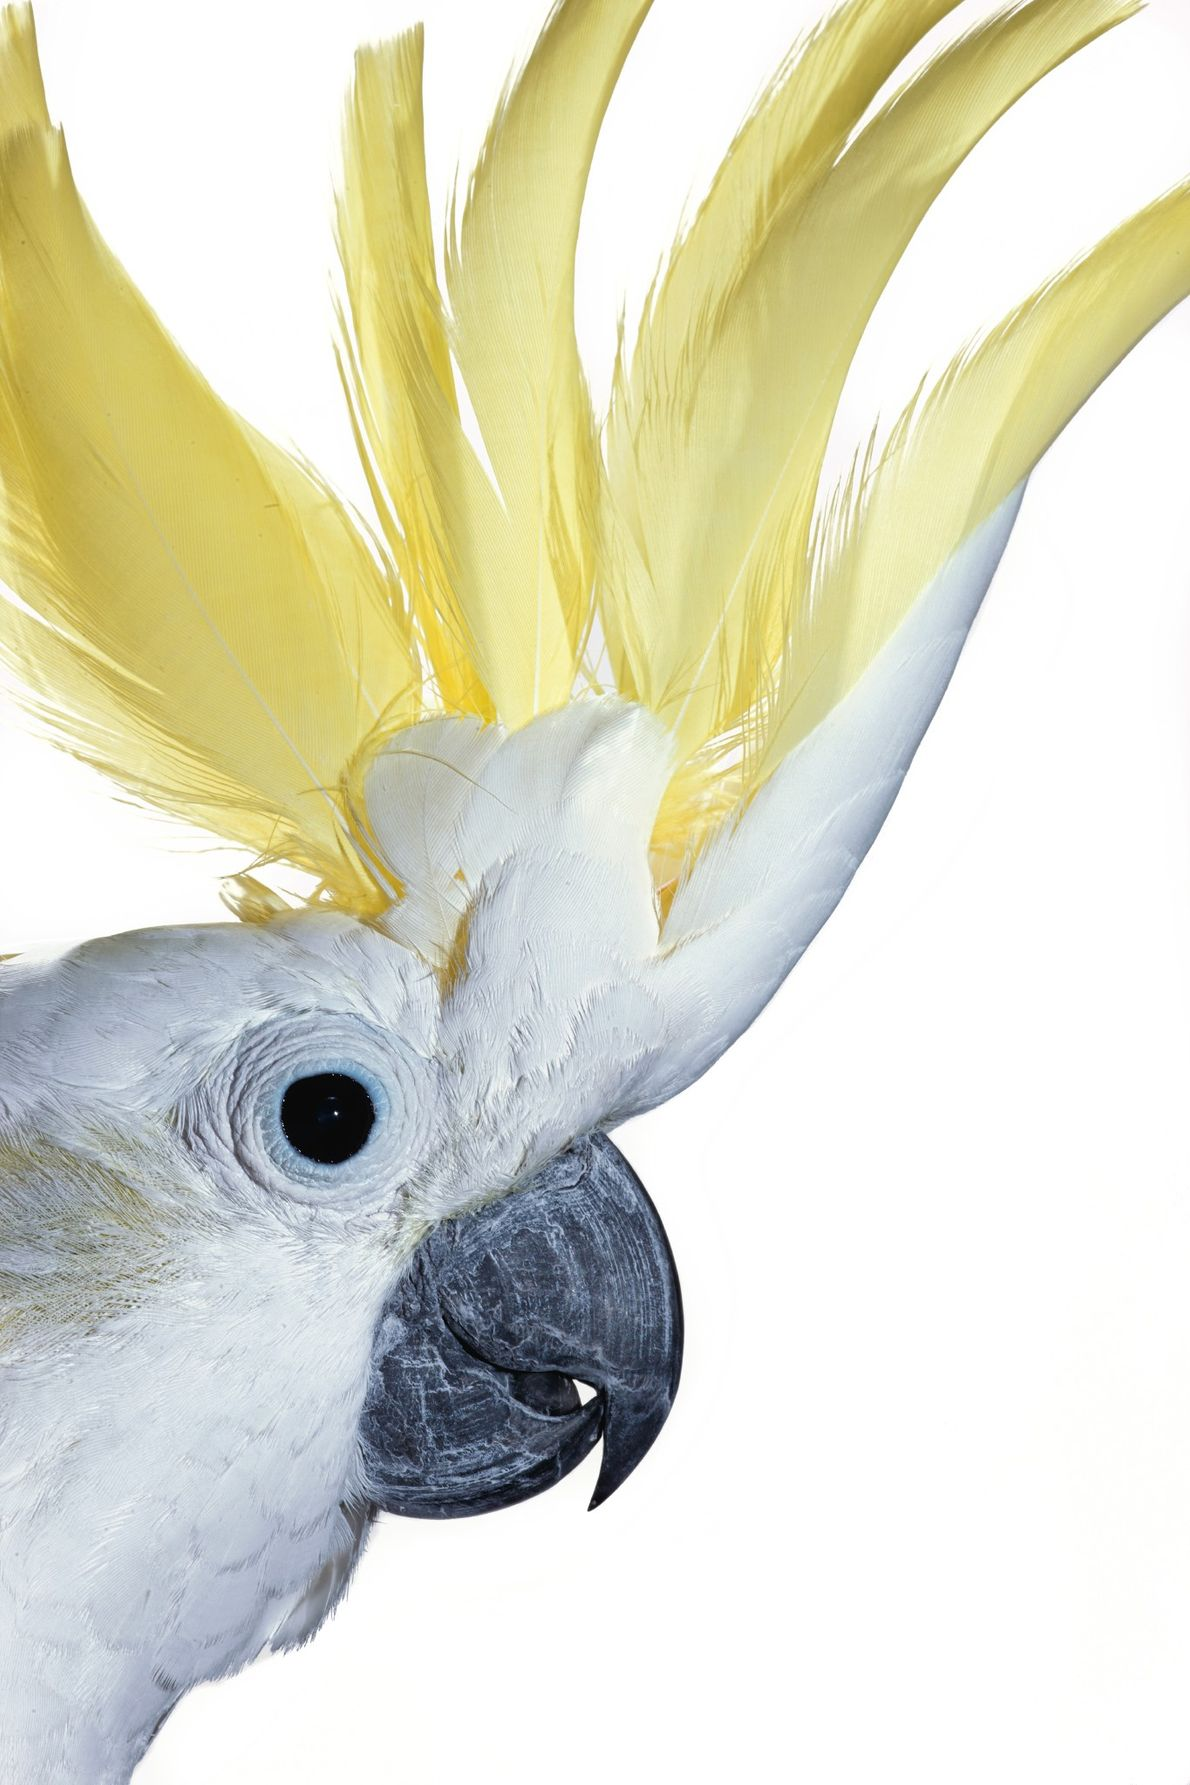 A sulphur-crested cockatoo unfurls its Mohawk to reveal delicate yellow feathers underneath. The species garnered internet ...